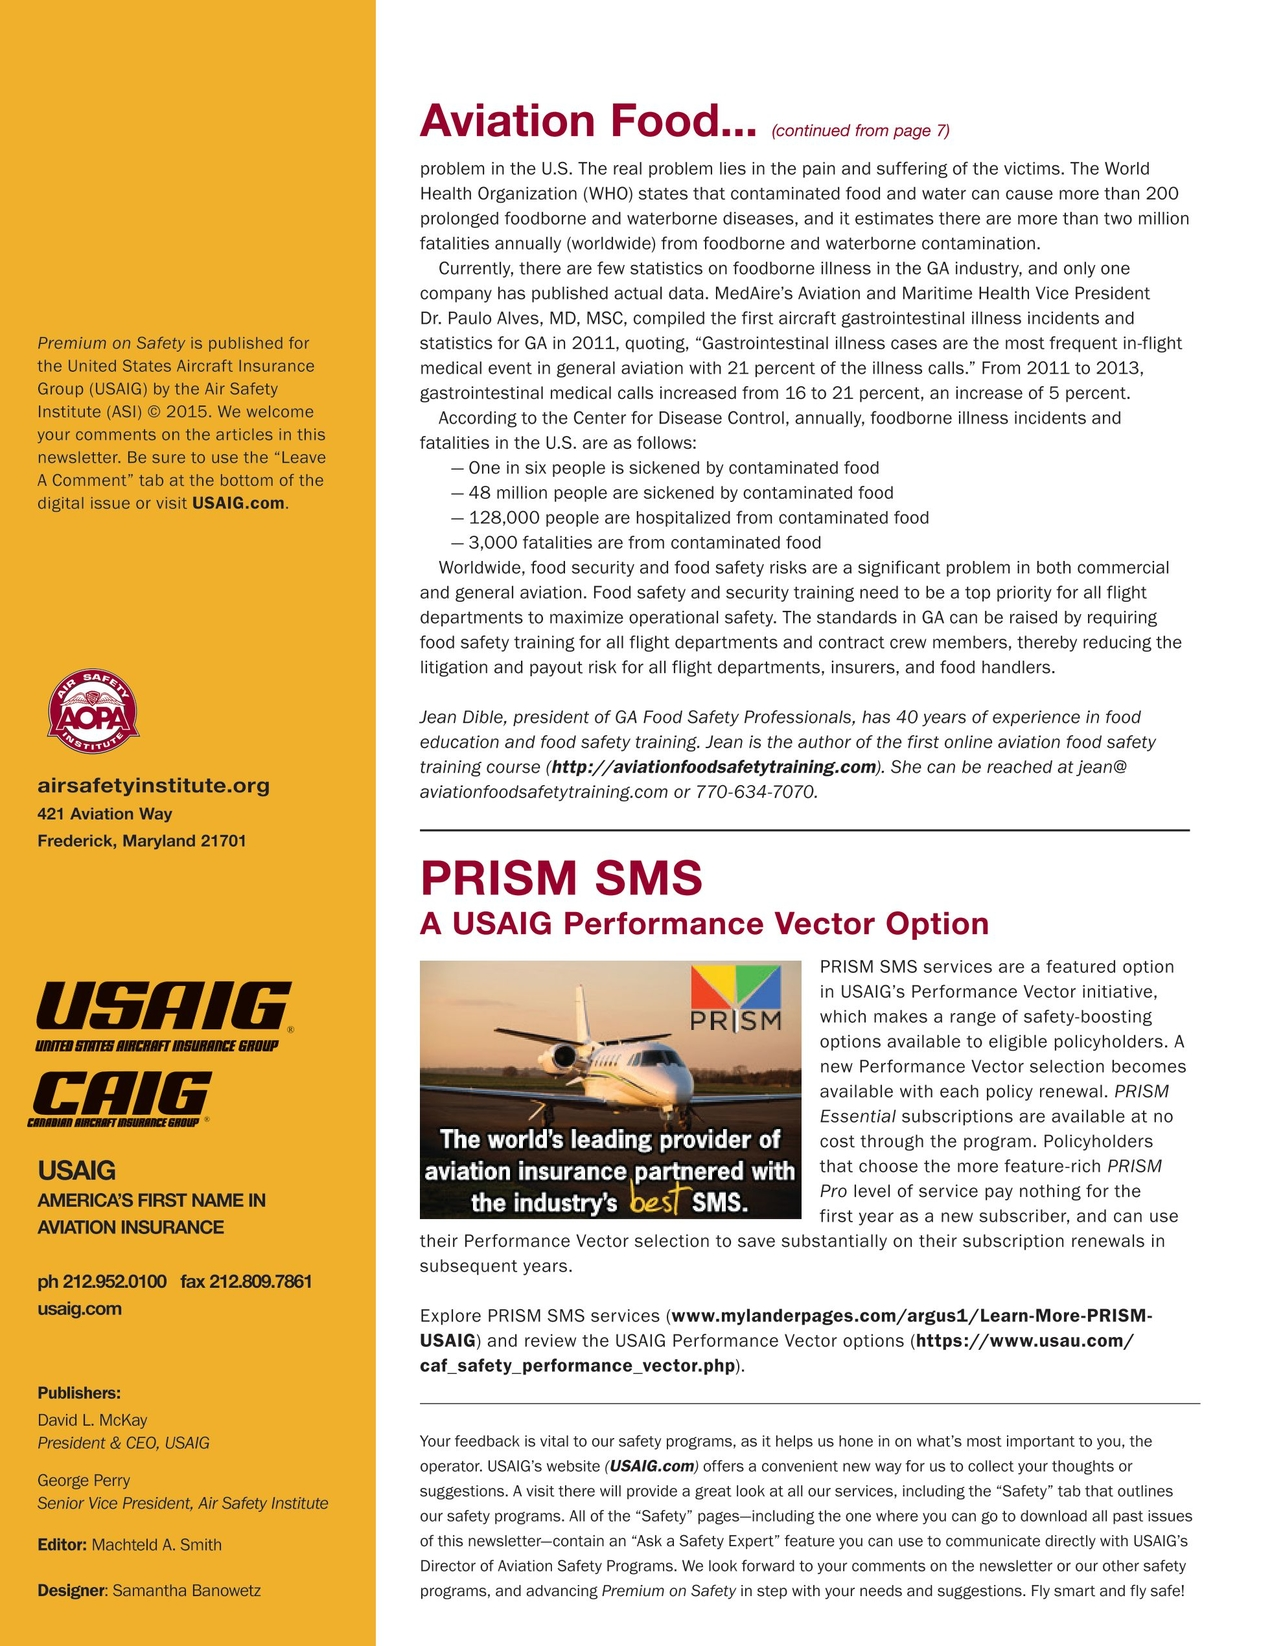 Premium On Safety - Issue 17, 2015